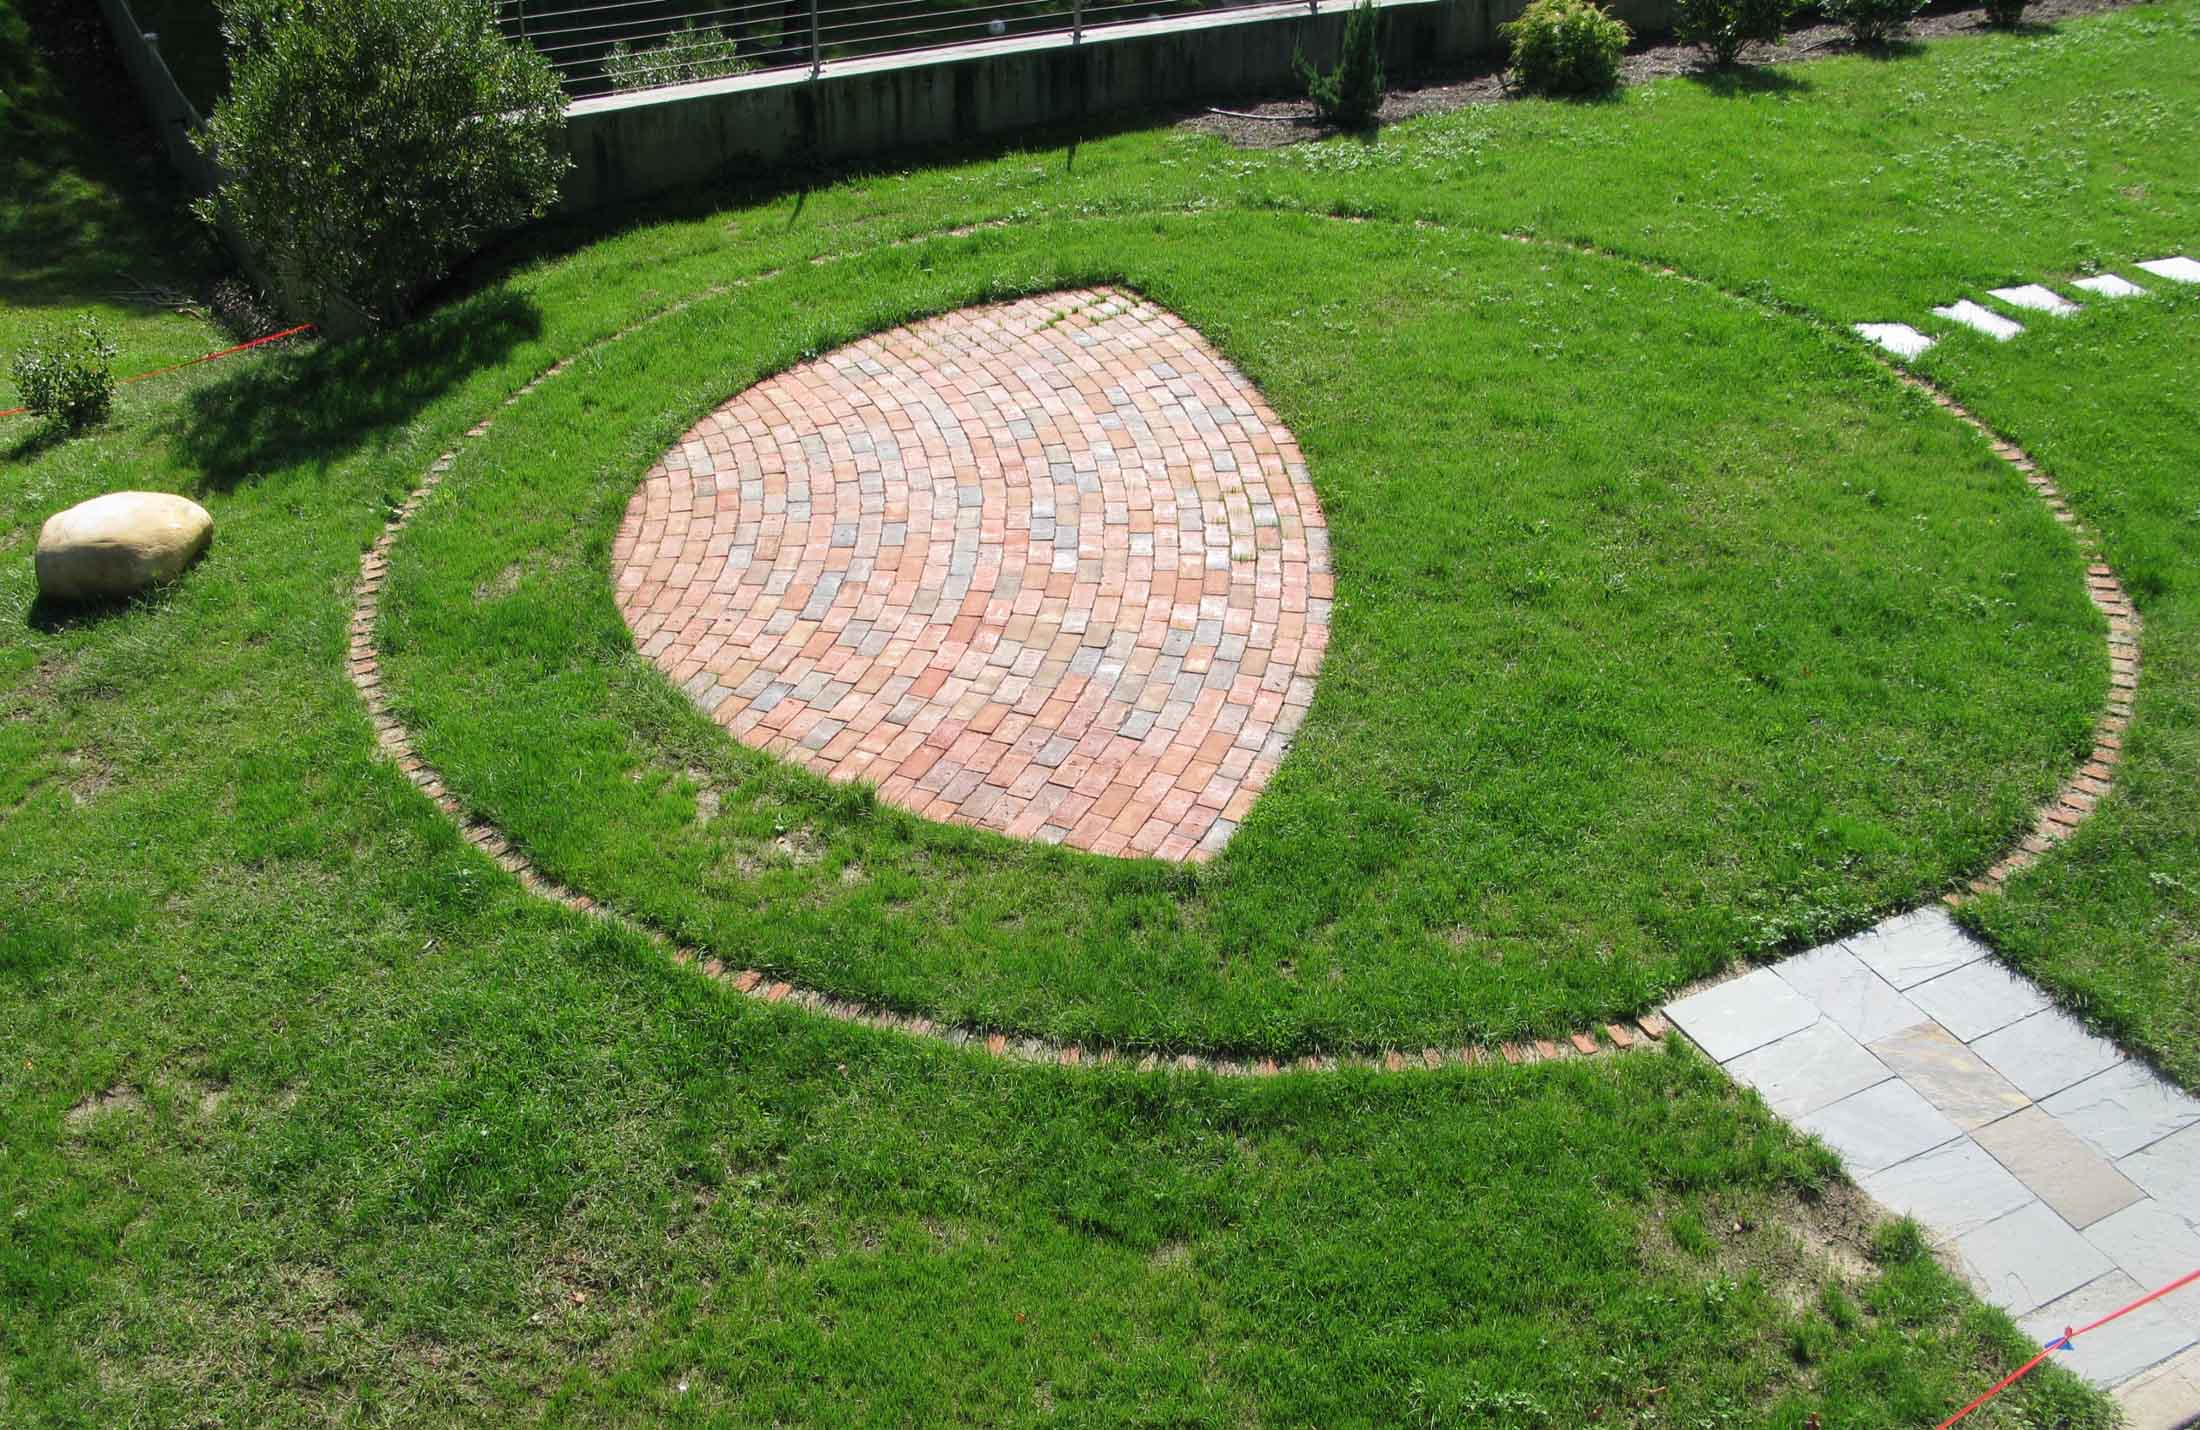 Bricks are inscribed with the names of the Remembered, arrayed in a circle centered on the Memory Stone, a regional glacial anomaly.